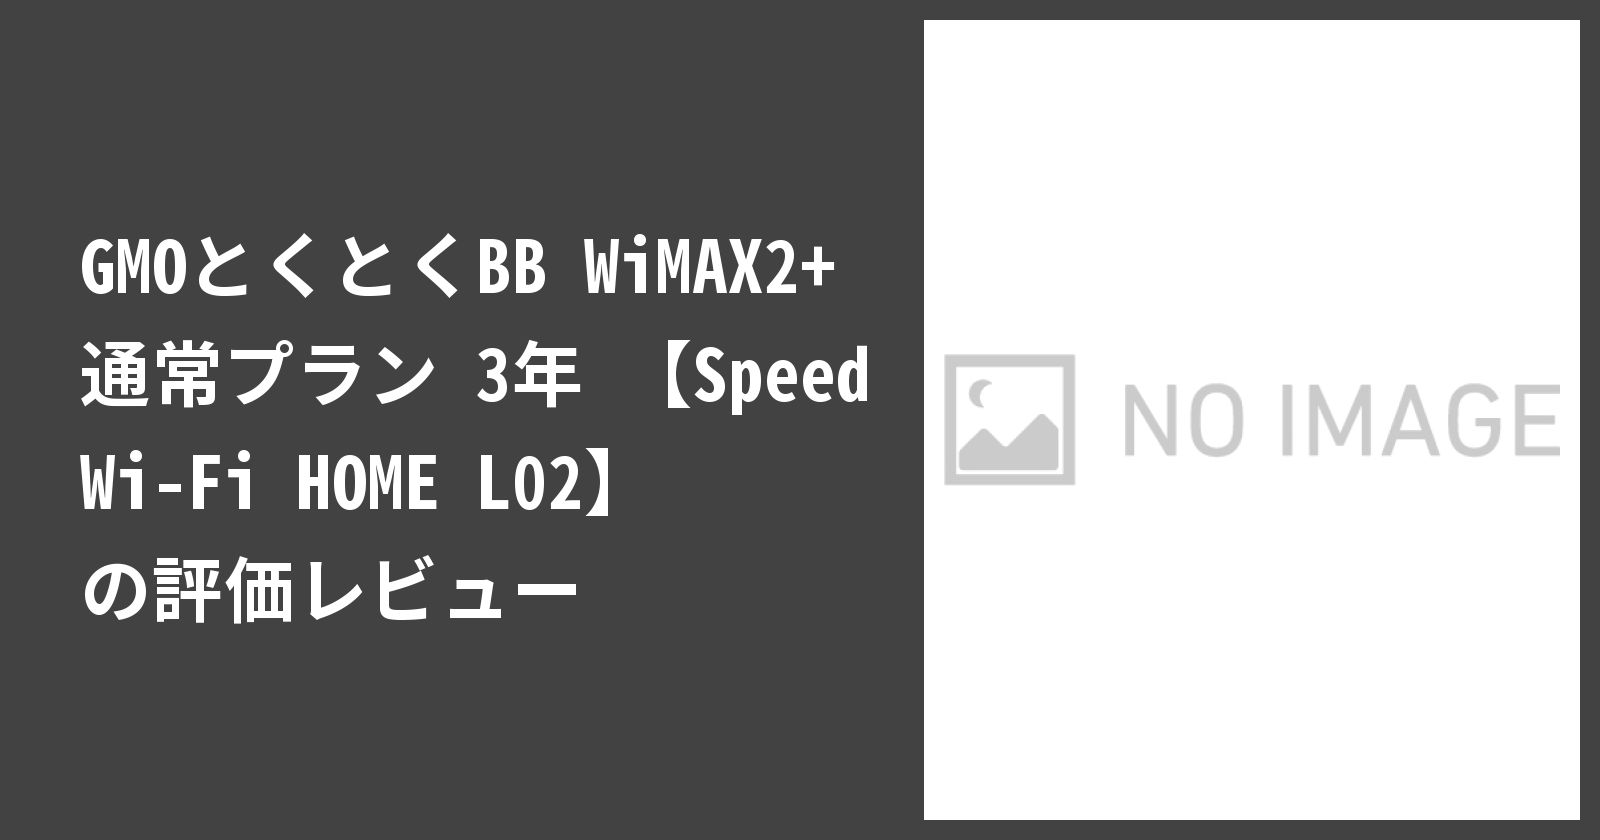 GMOとくとくBB WiMAX2+ 通常プラン 3年 【Speed Wi-Fi HOME L02】を徹底評価